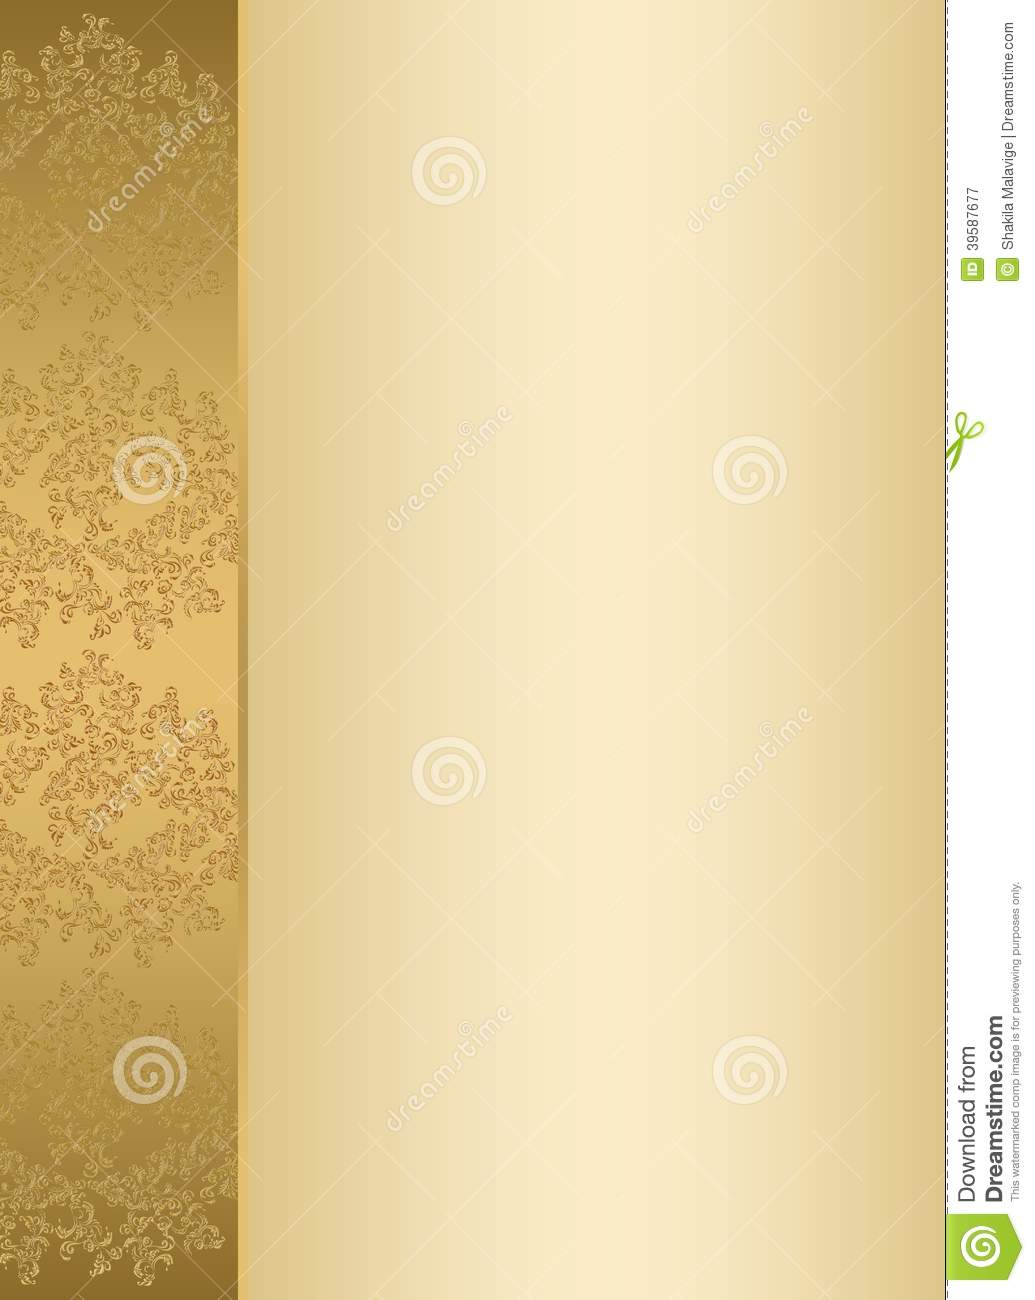 Golden Invitation Card Template Photo Image 39587677 – Template Invitation Card